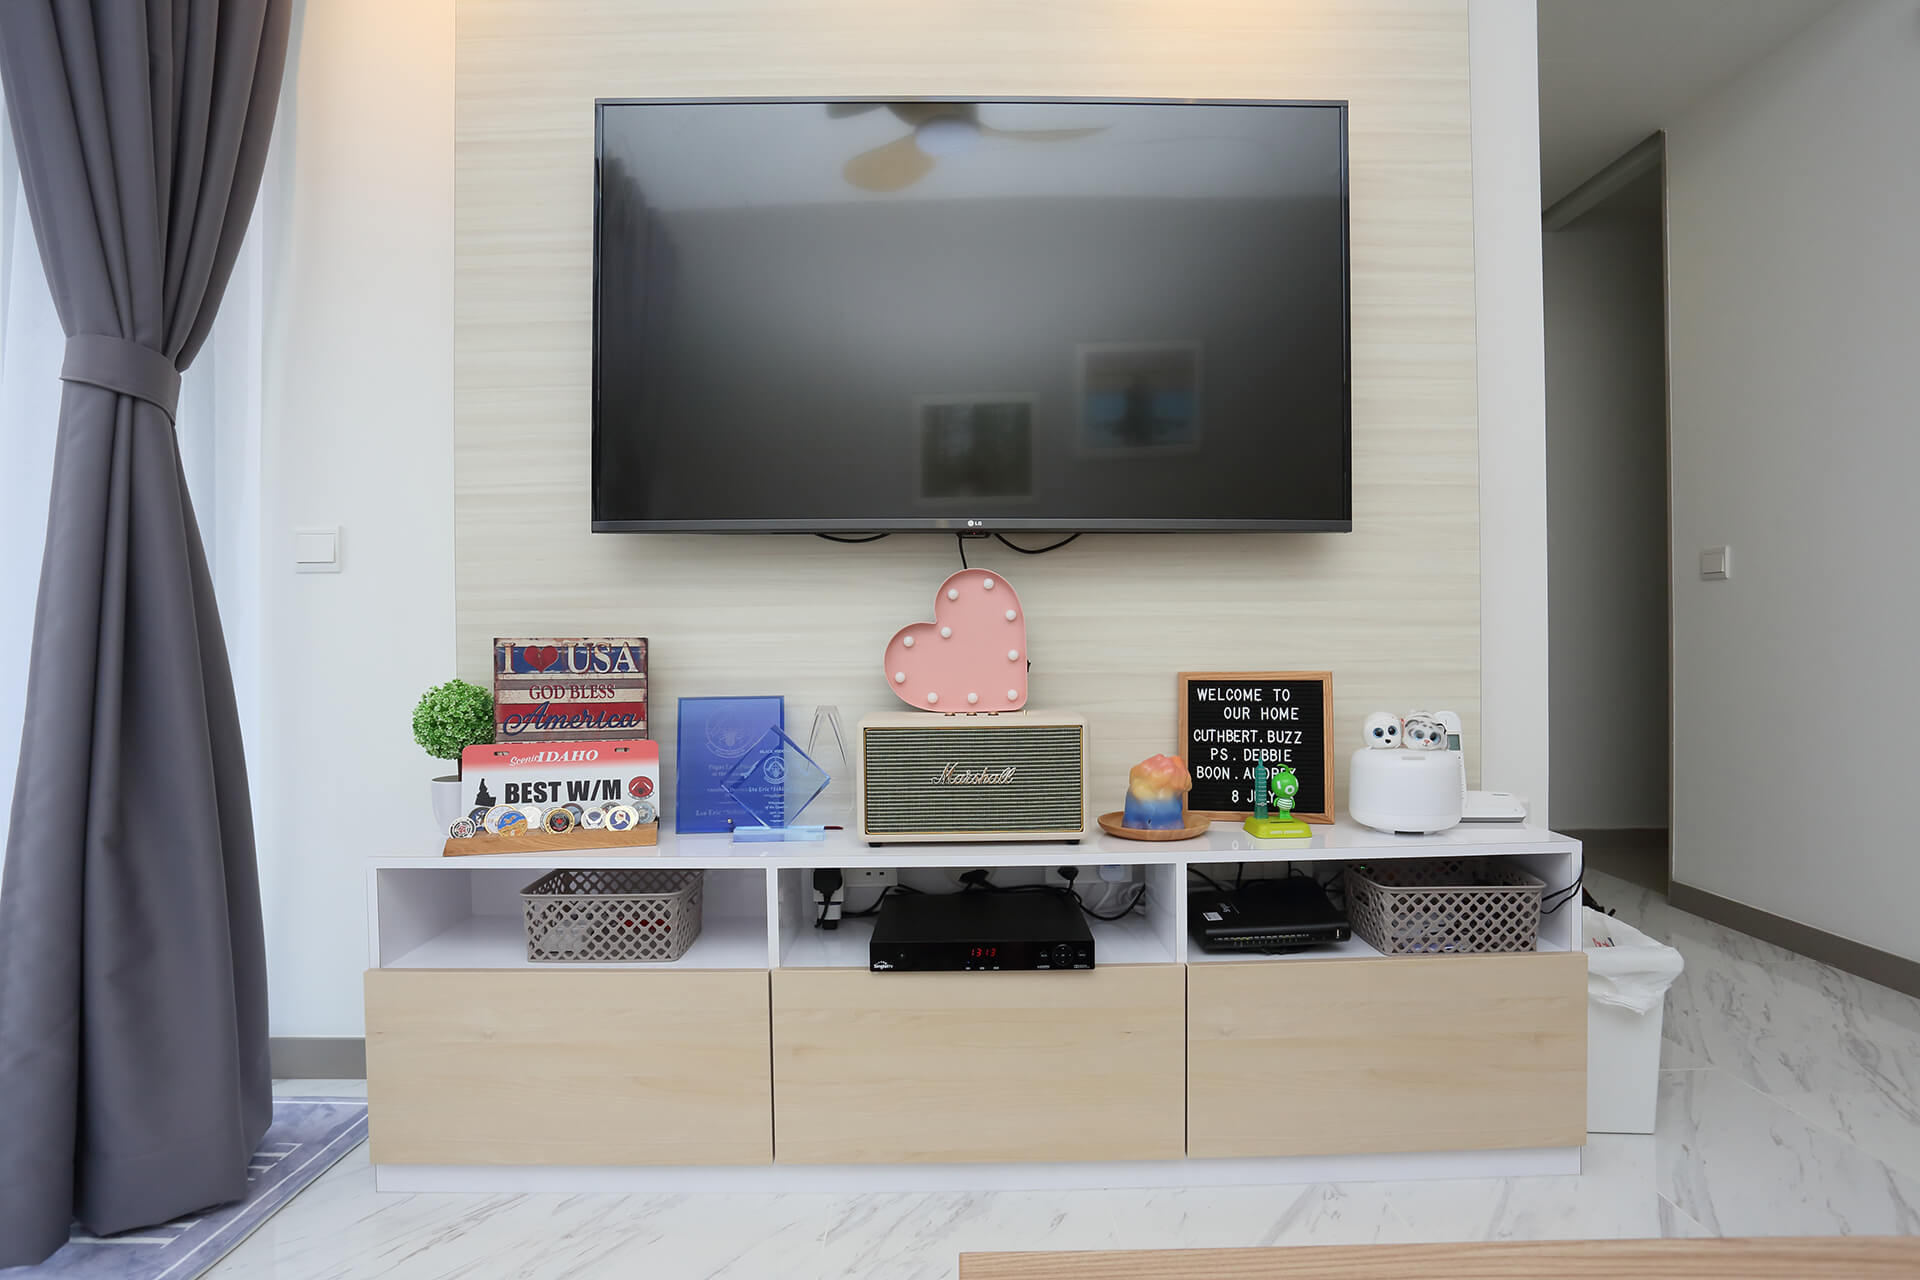 Contemporarily Minimalist Space Interior Design TV Console Front View